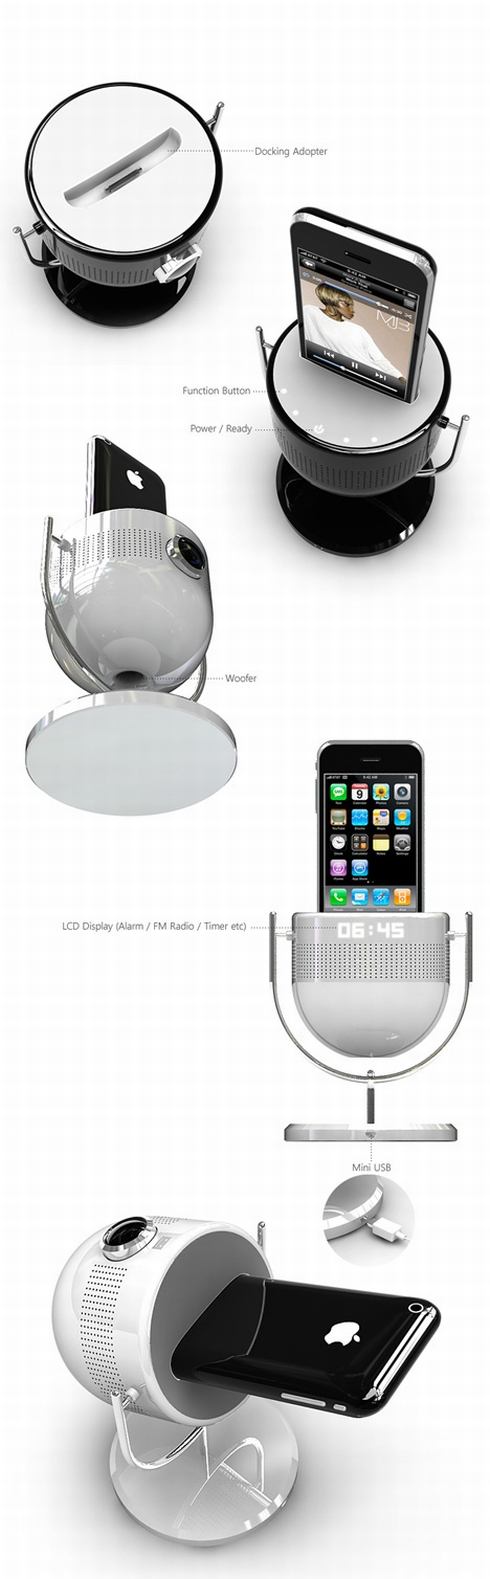 e-pod_iphone_dock_concept_3